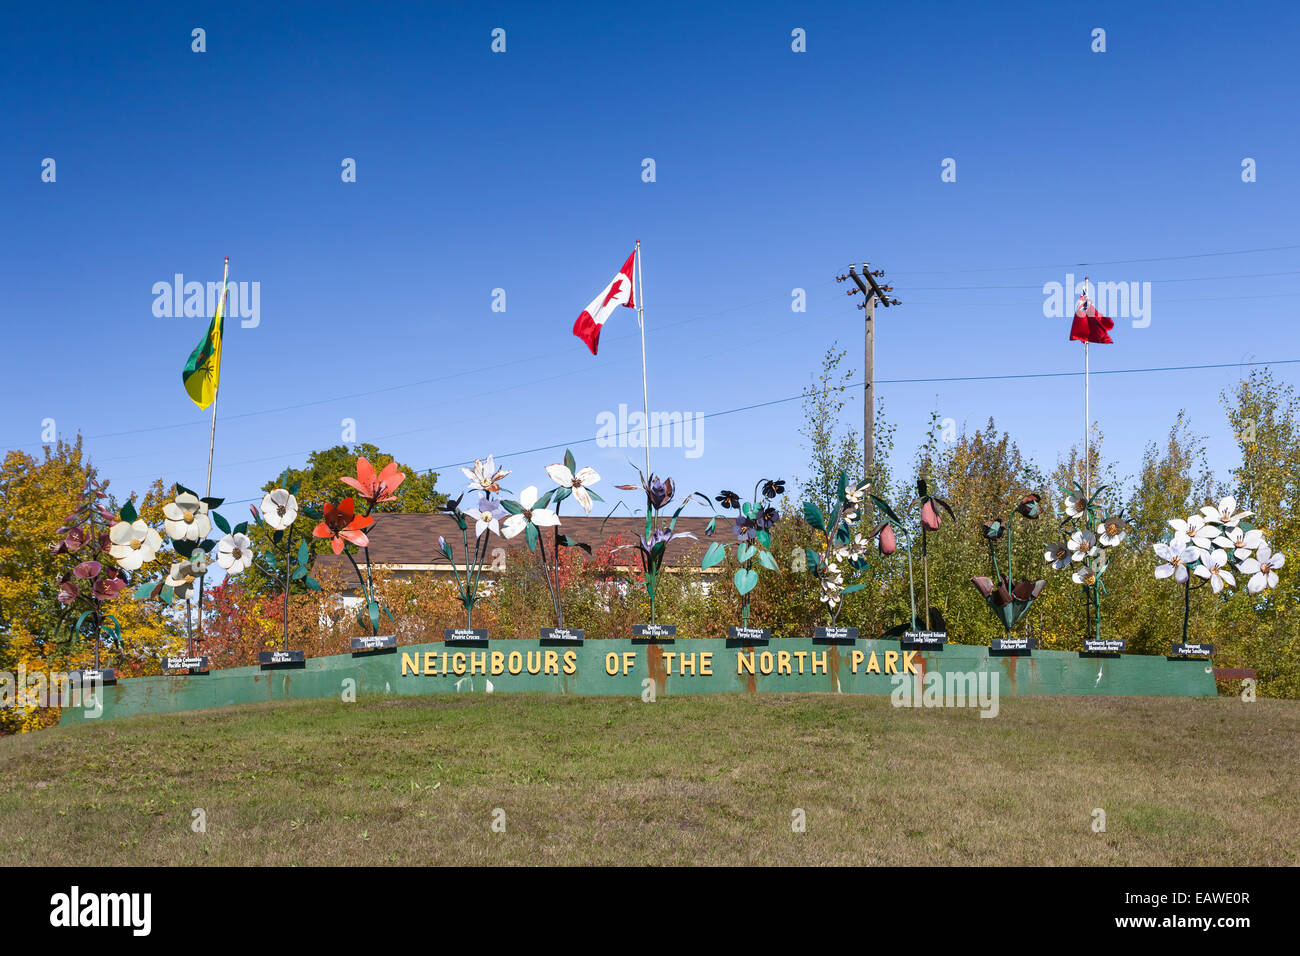 Neighbors of the North Park in Flin Flon, Manitoba, Canada. - Stock Image